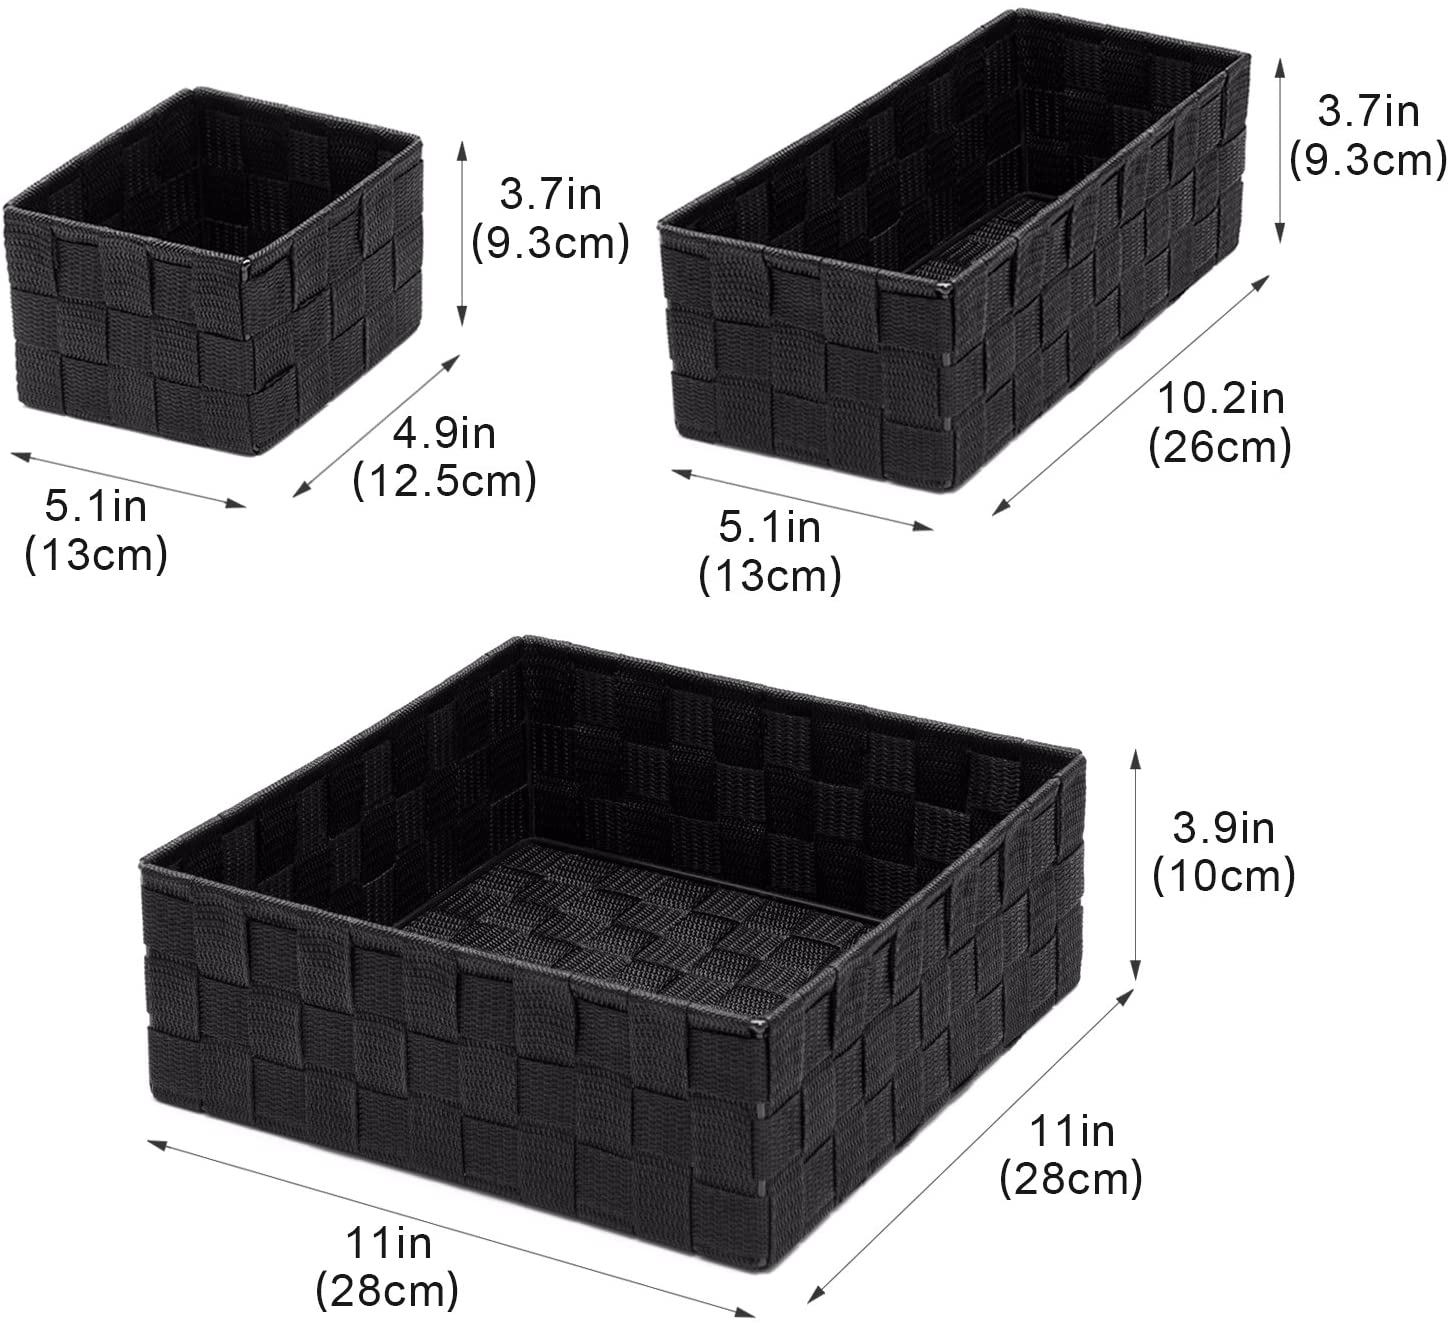 Black Dresser,Set of 4 Woven Storage Box Cube Basket Bin Container Tote Organizer Divider for Drawer,Closet,Shelf